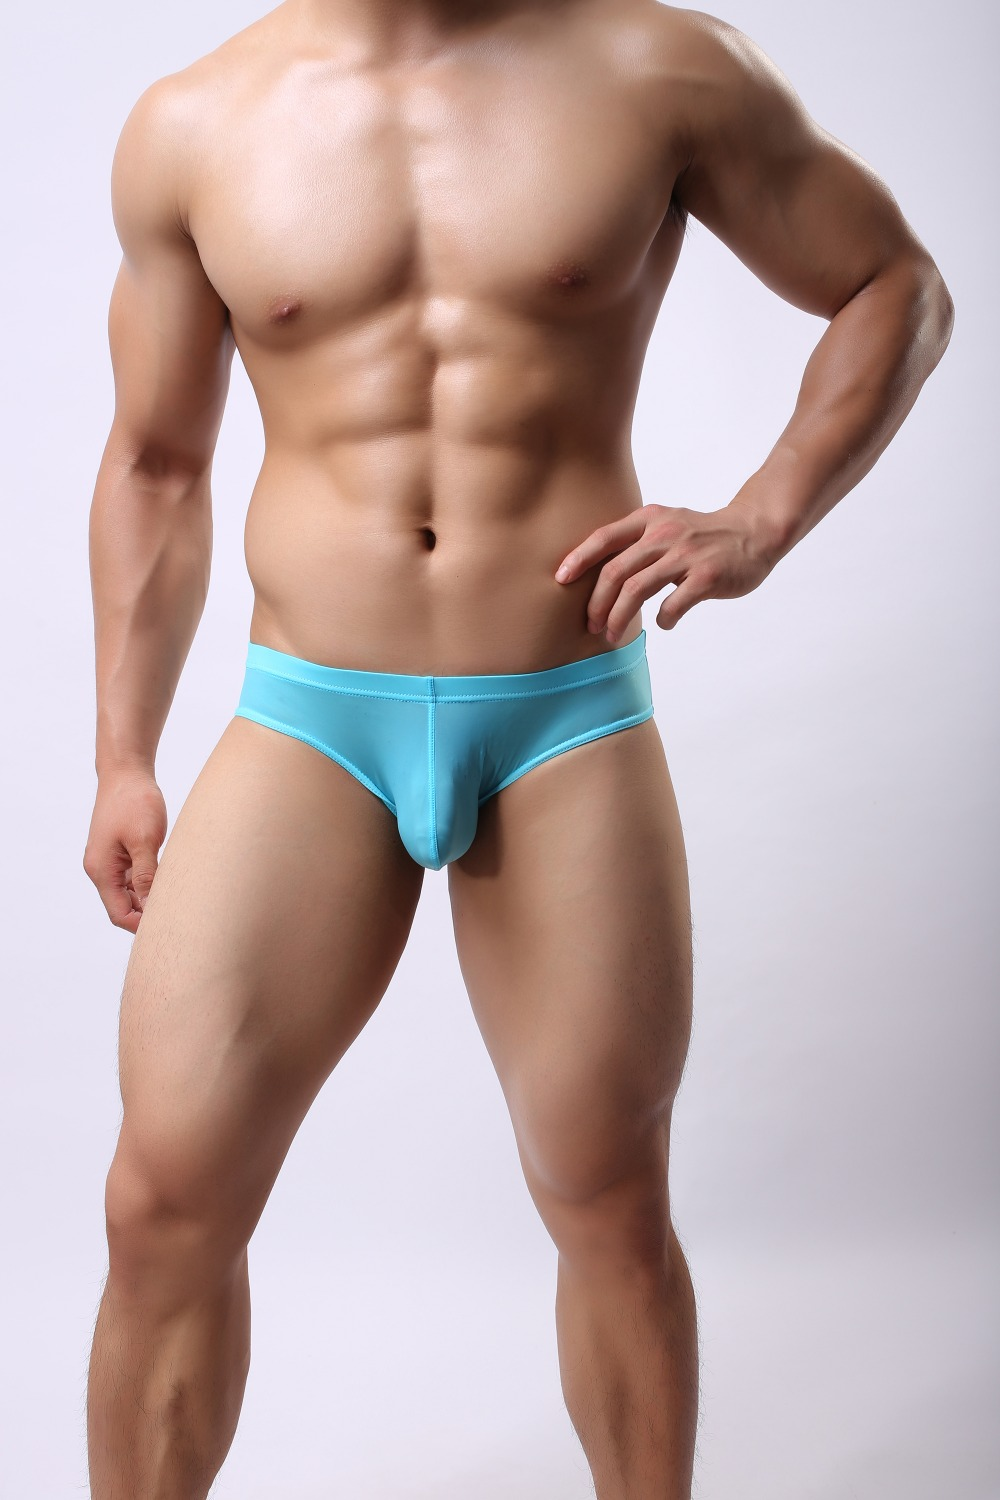 Men s sheer underwear opinion you